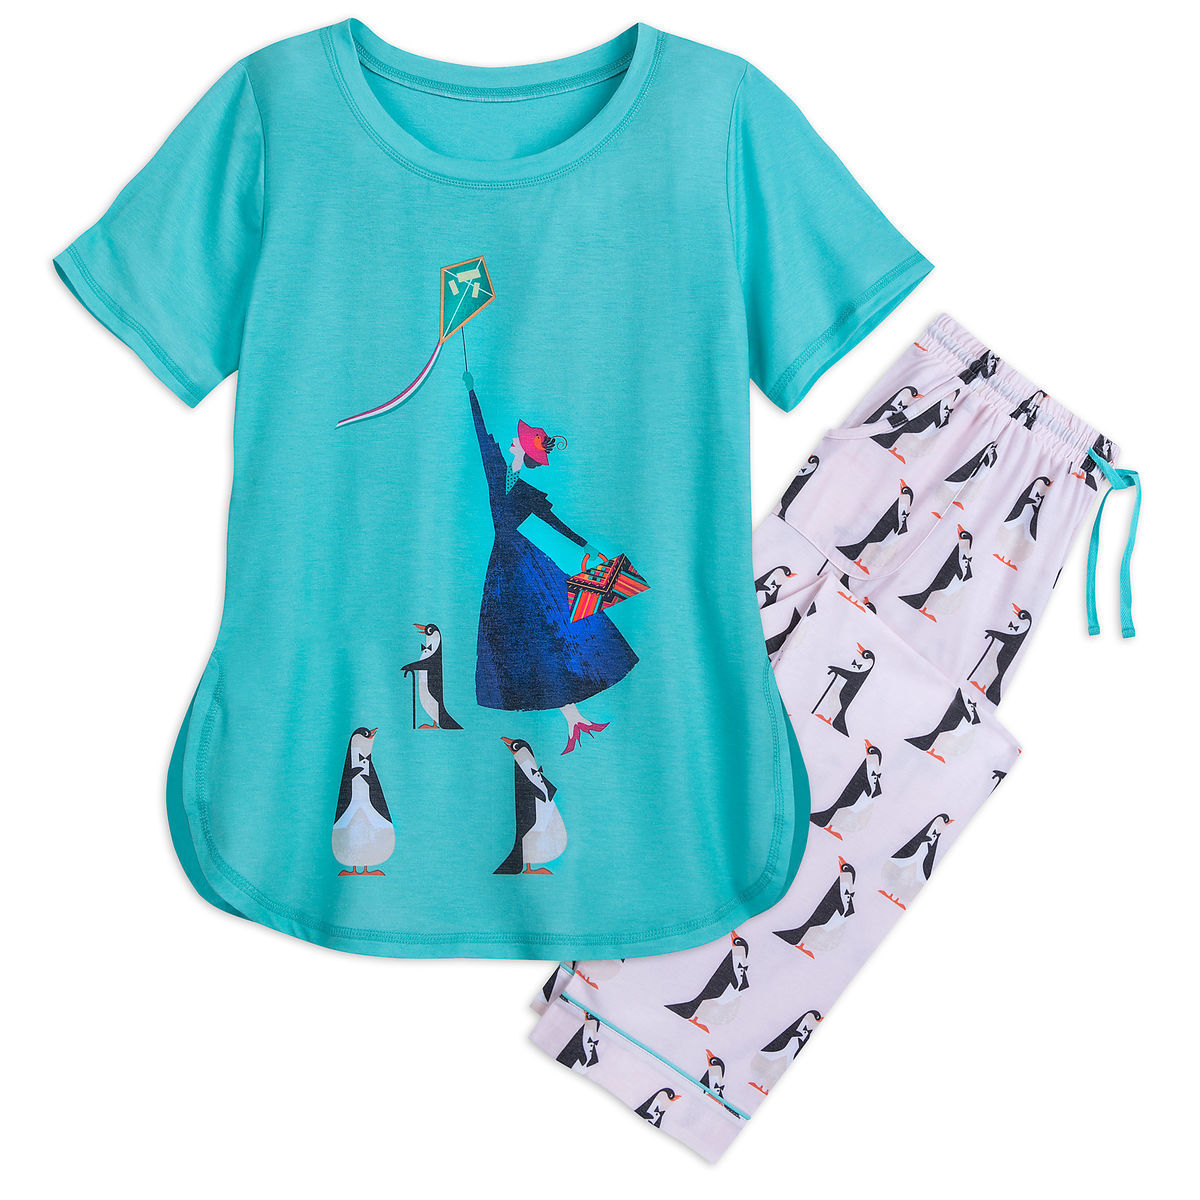 Mary Poppins Merchandise from ShopDisney! #MaryPoppinsReturns 2